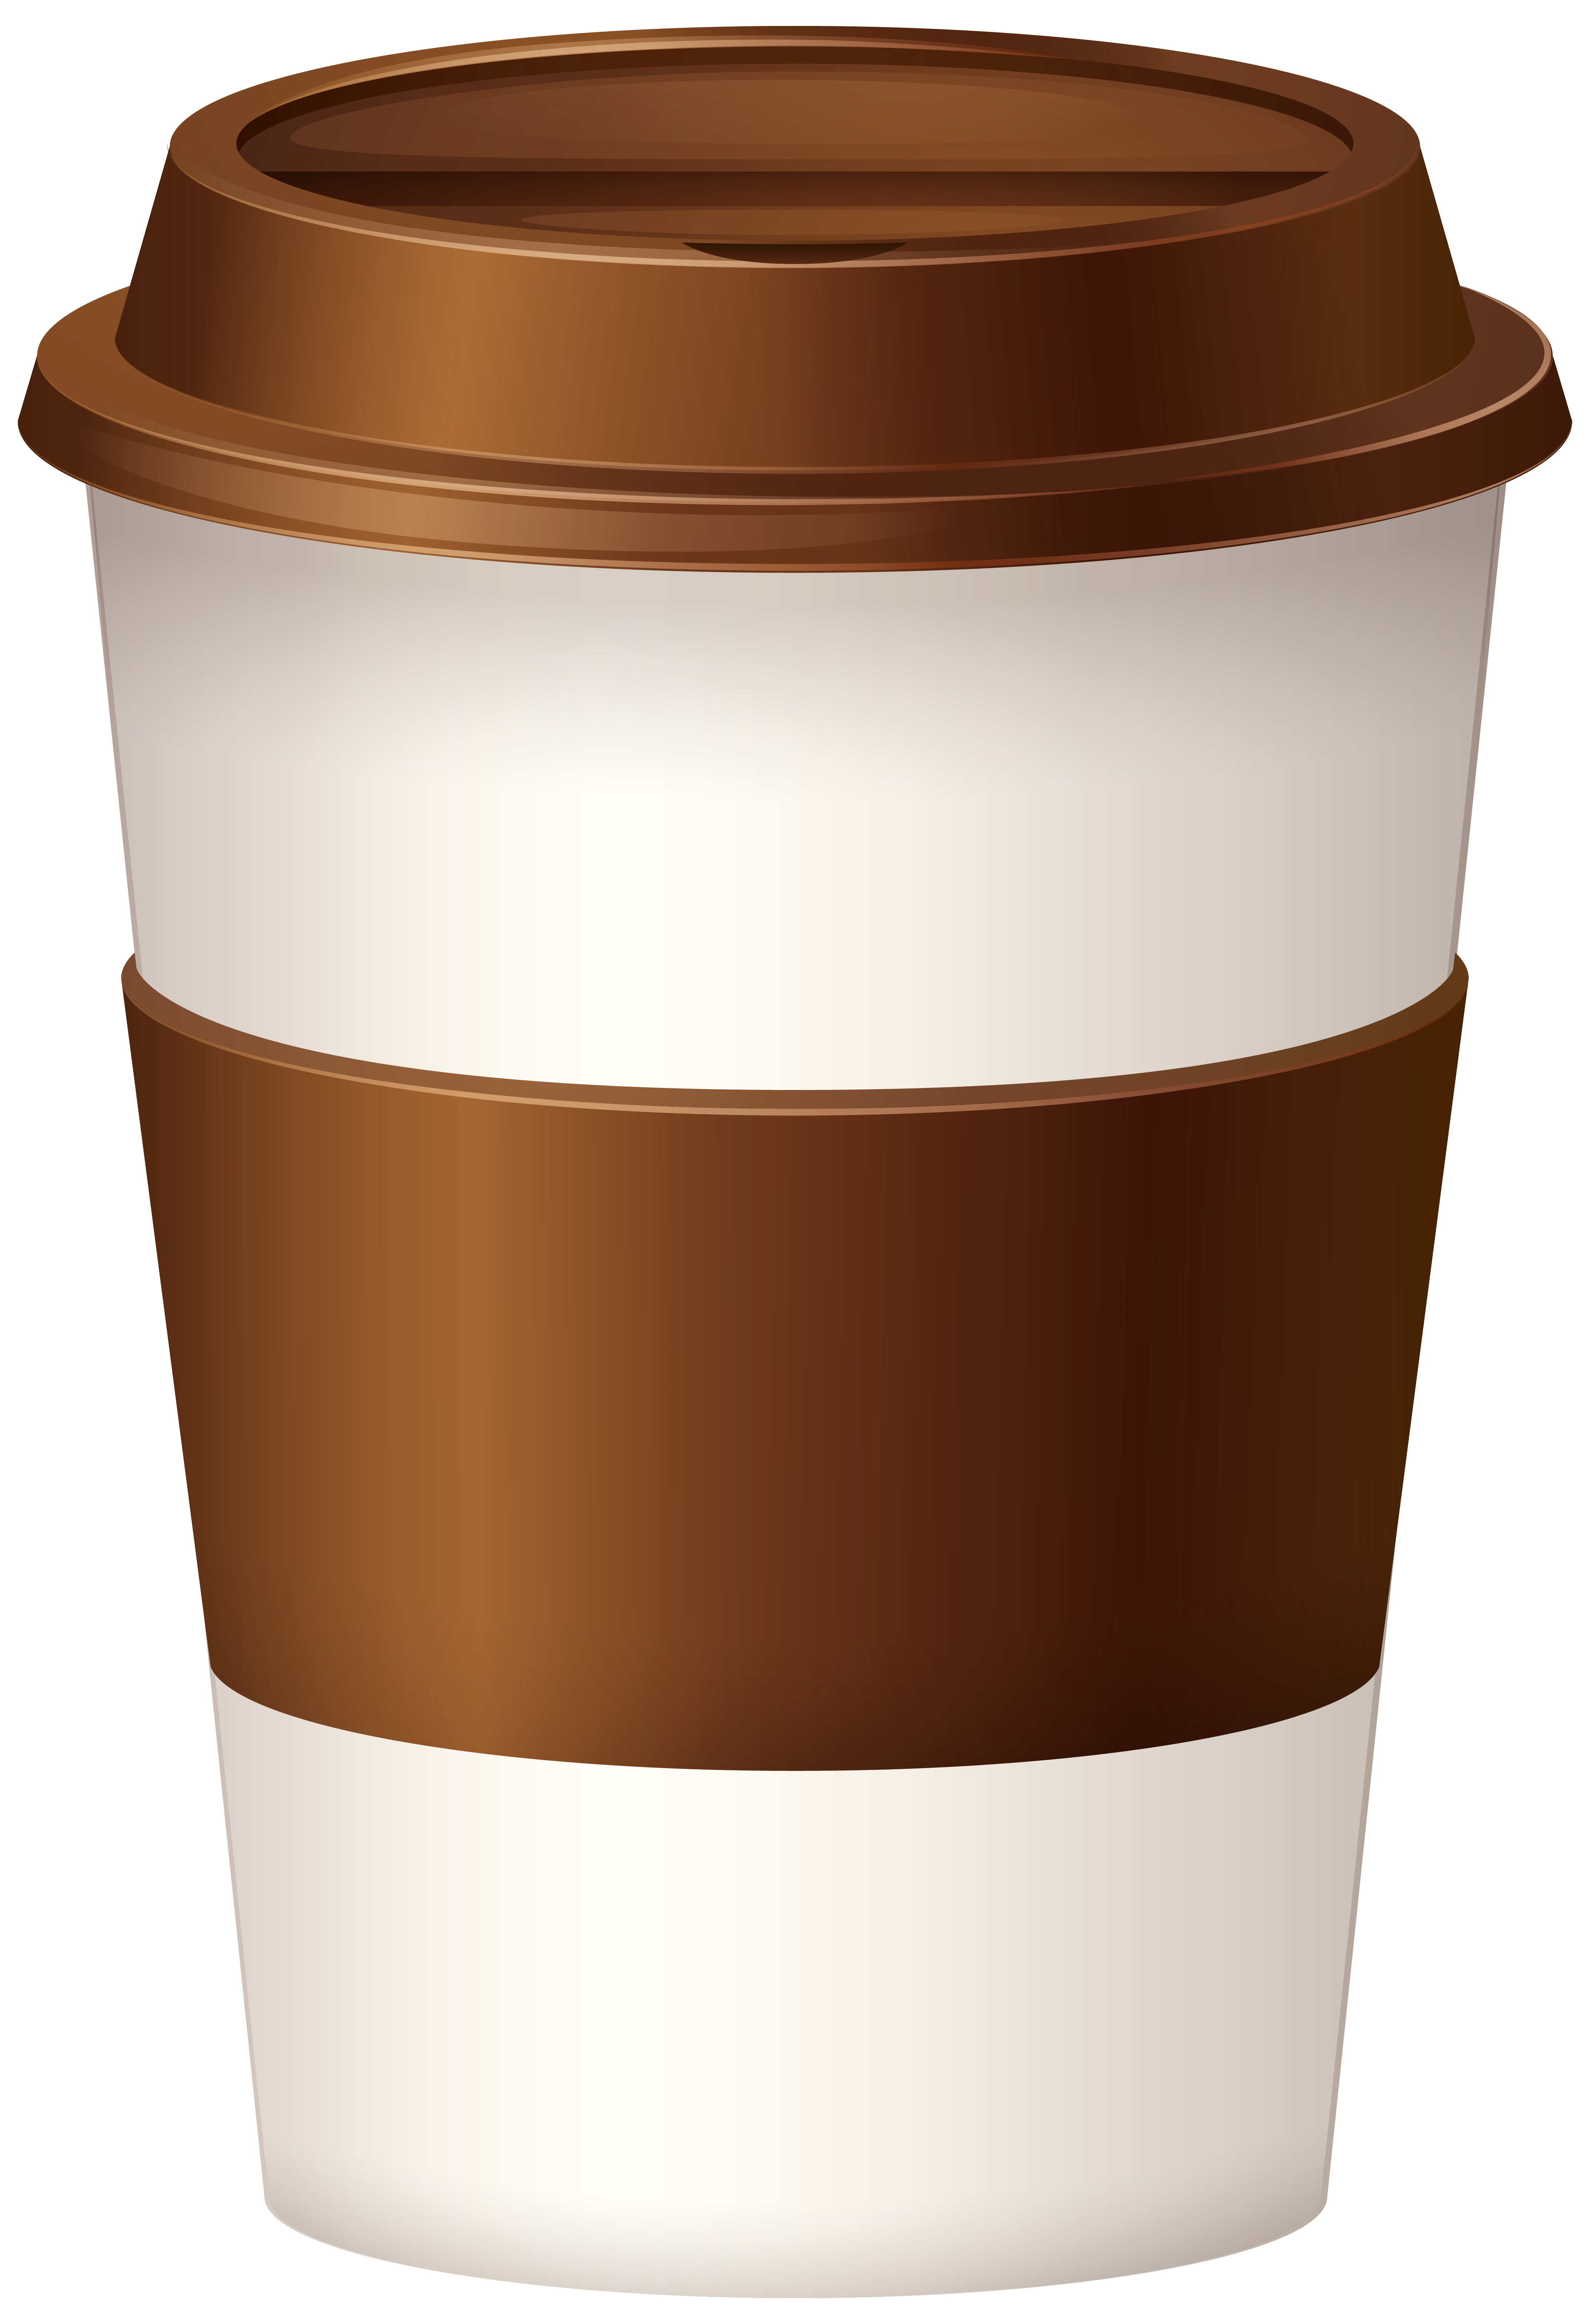 Coffee clipart hot coffee Cup perfect image Coffee 3